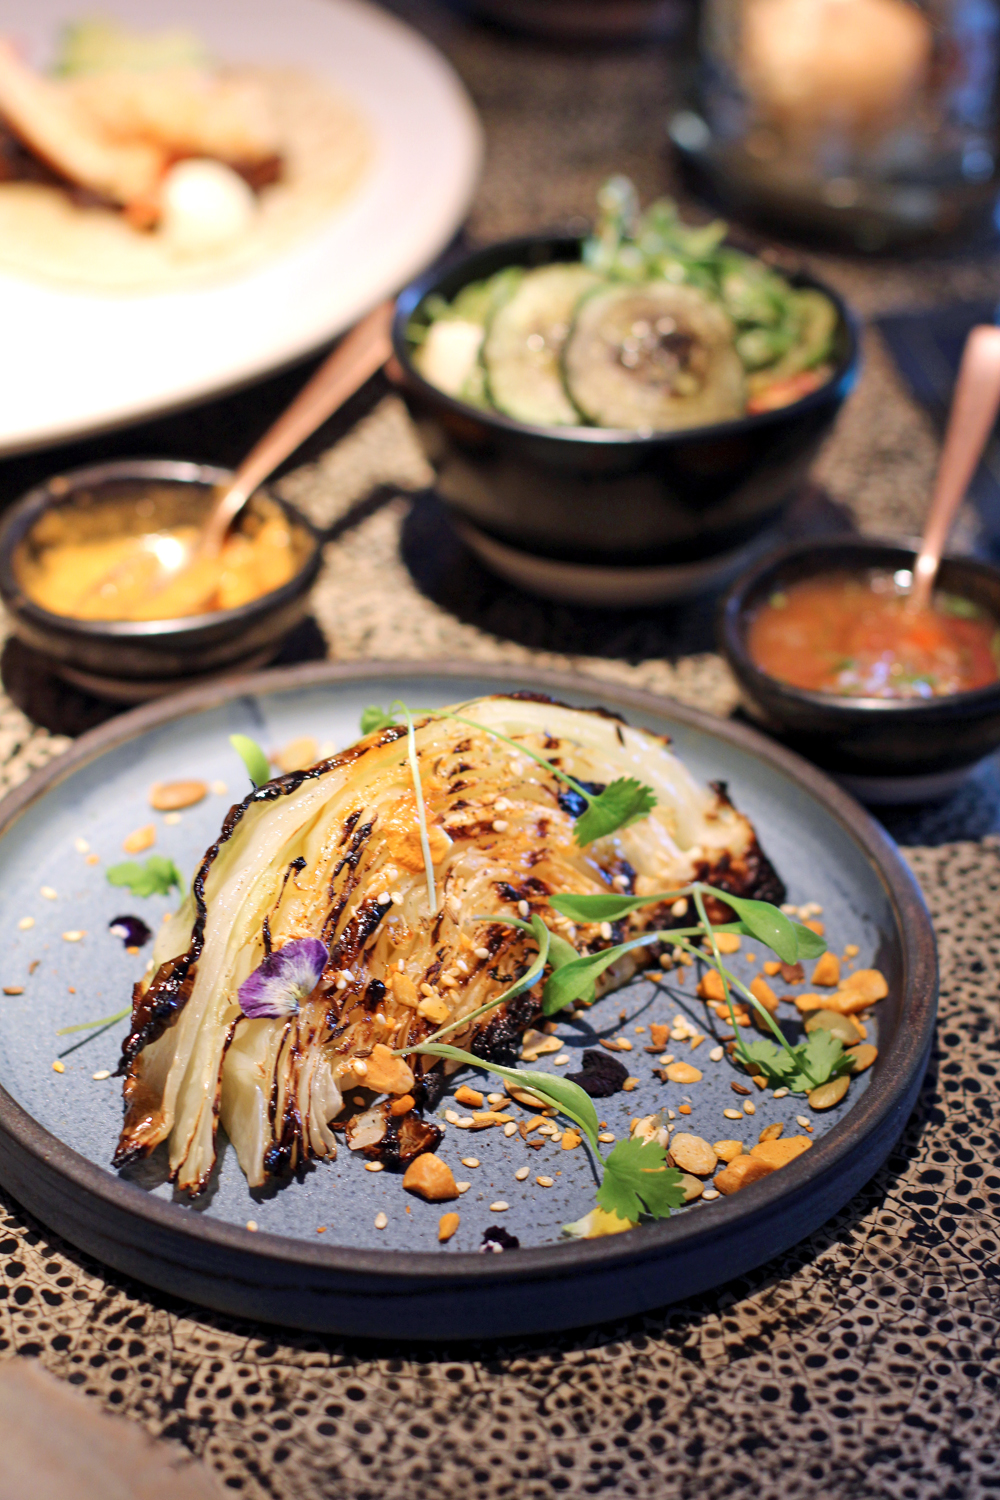 Ella Canta, Mexican food at Park Lane Intercontinental, London - UK lifestyle blog